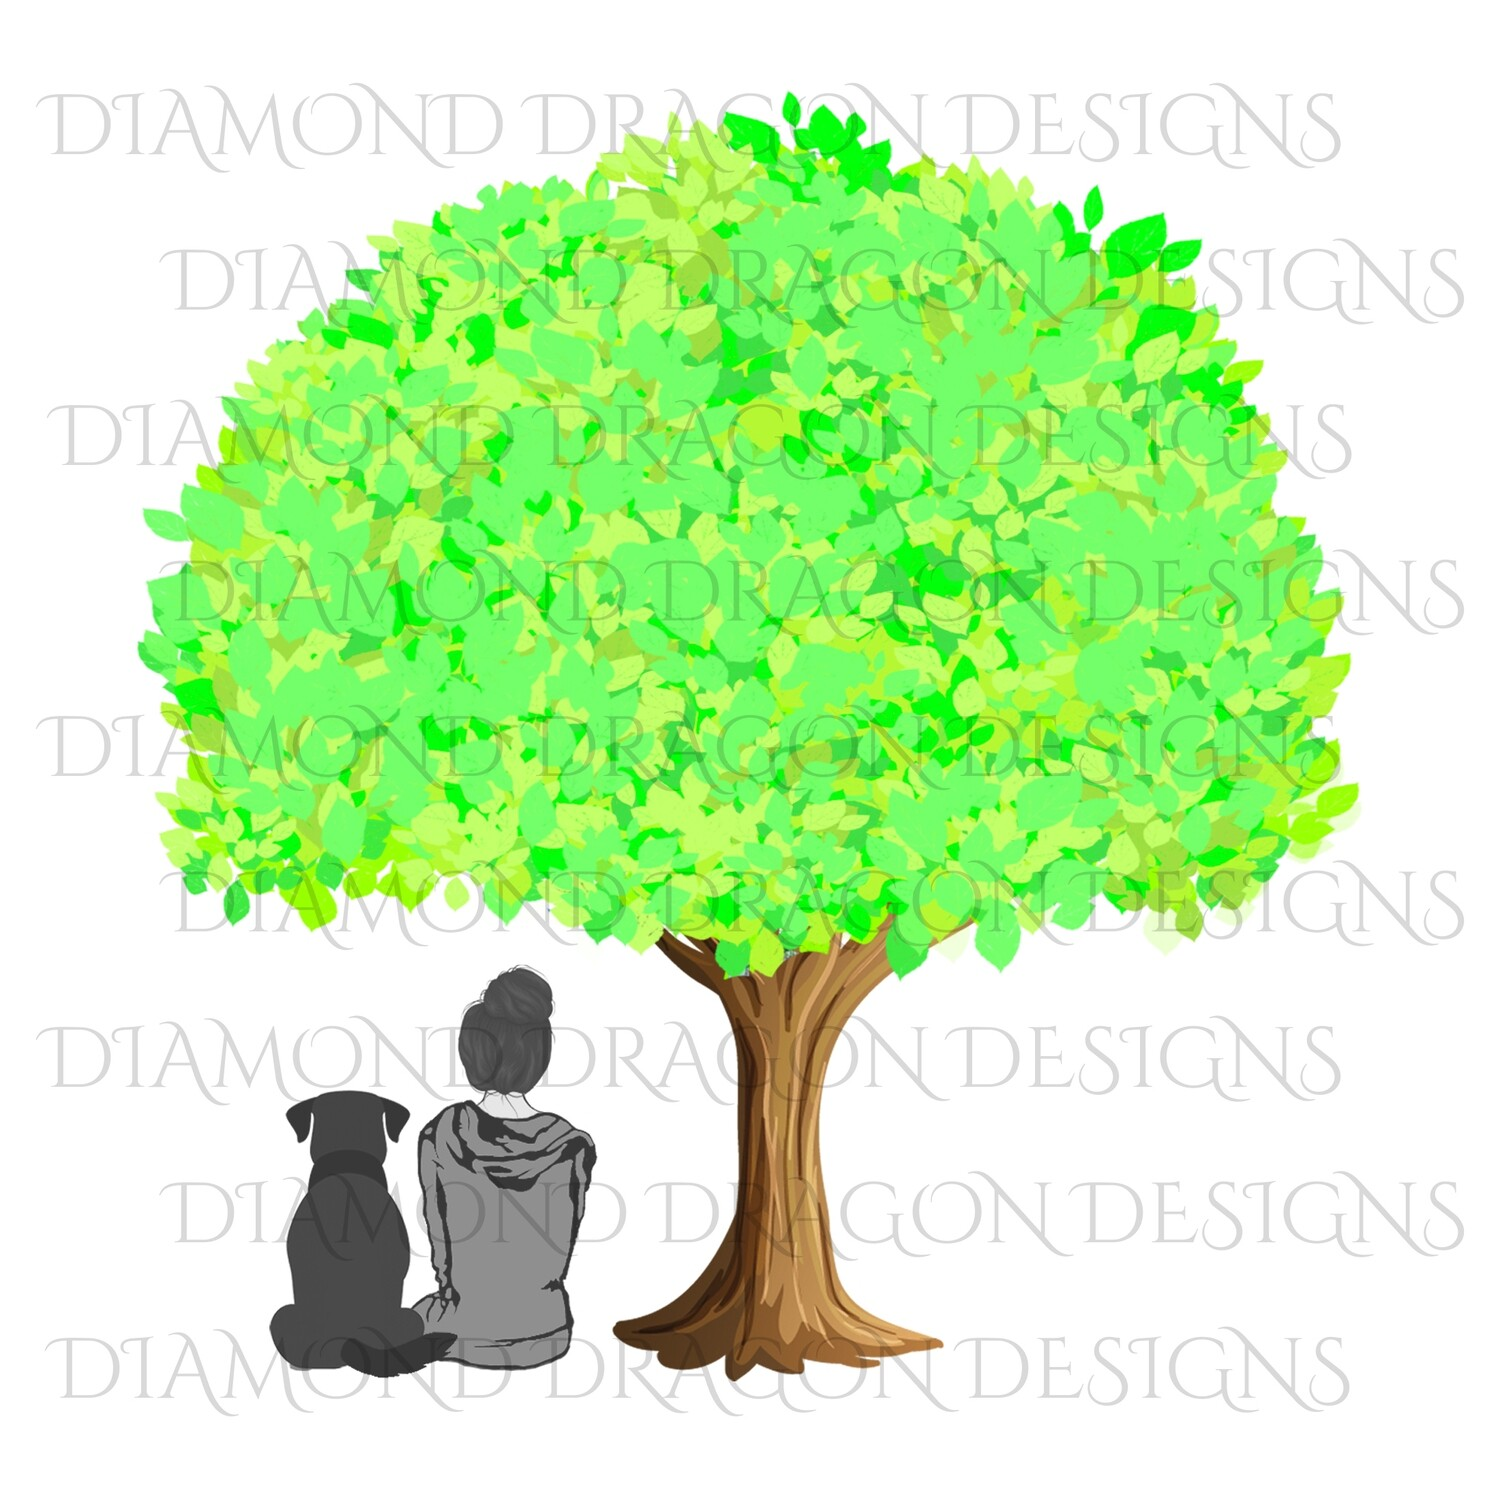 Dogs - Girl Who Loves Dogs, Girl & Dog Under Tree, Girls Best Friend, Woman and Dog Under Tree, Summer, Digital Image